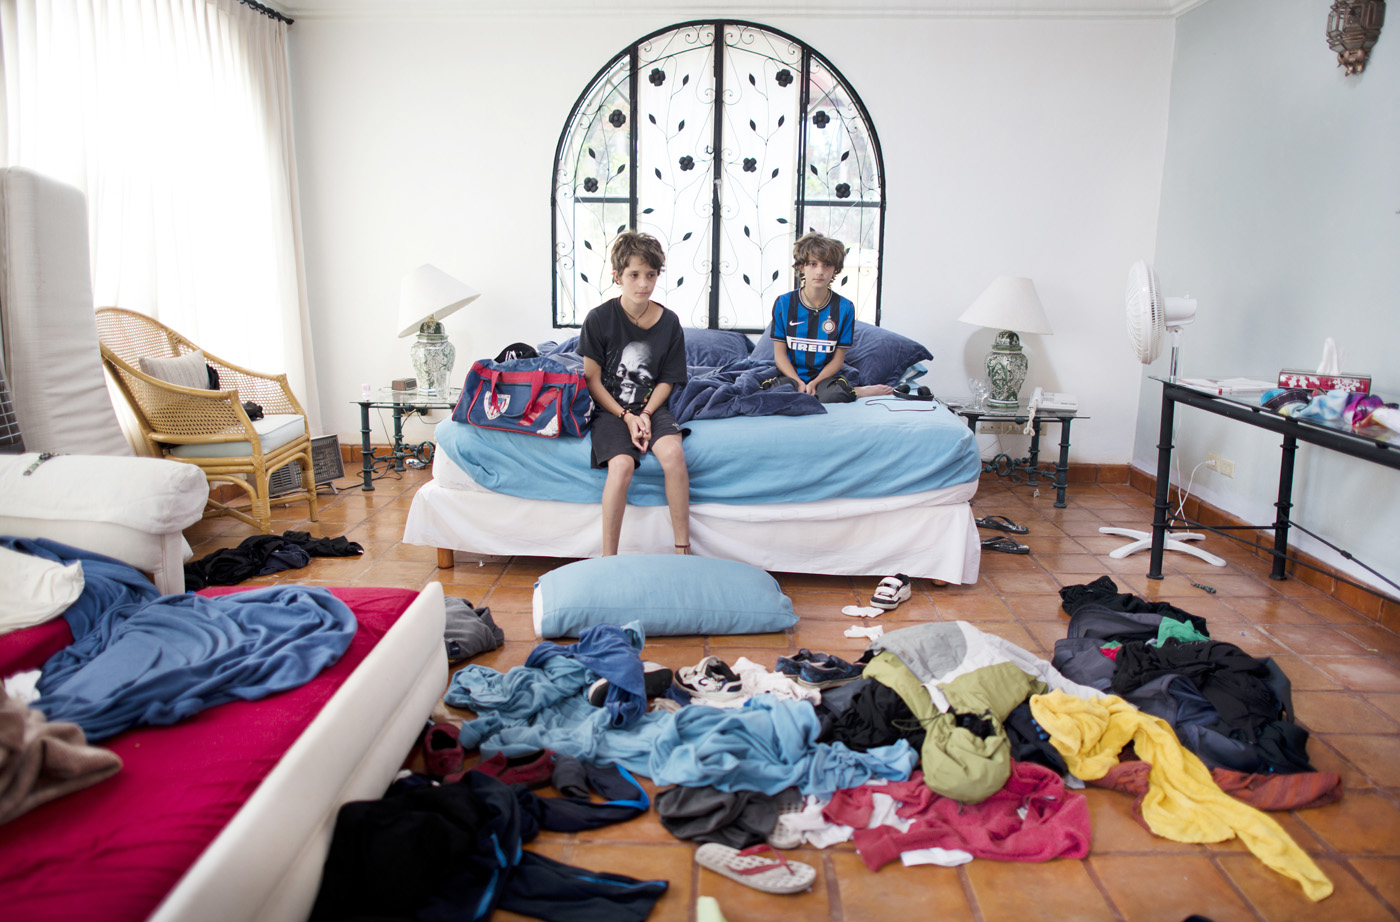 Maximo and Primo Hollander (twin brothers) in their room at a rental house in San Miguel de Allende, Mexico.